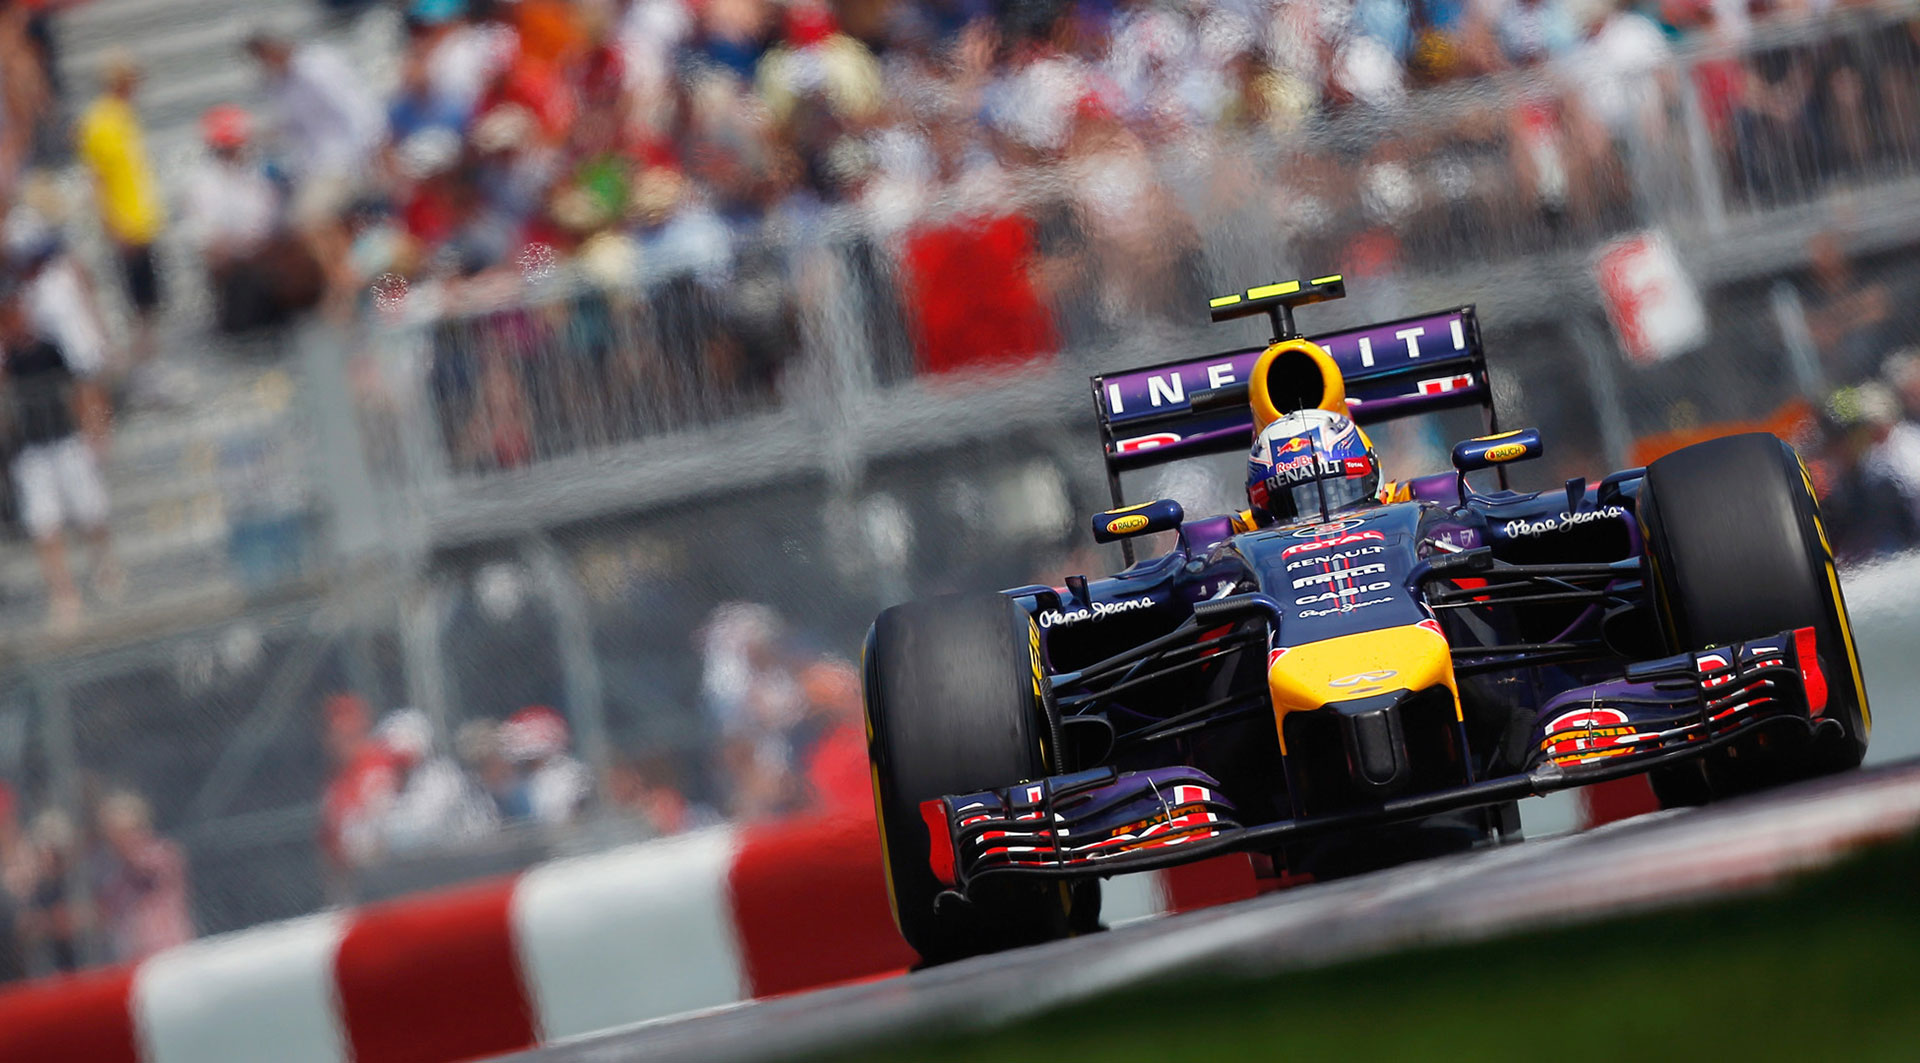 canadian grand prix packages